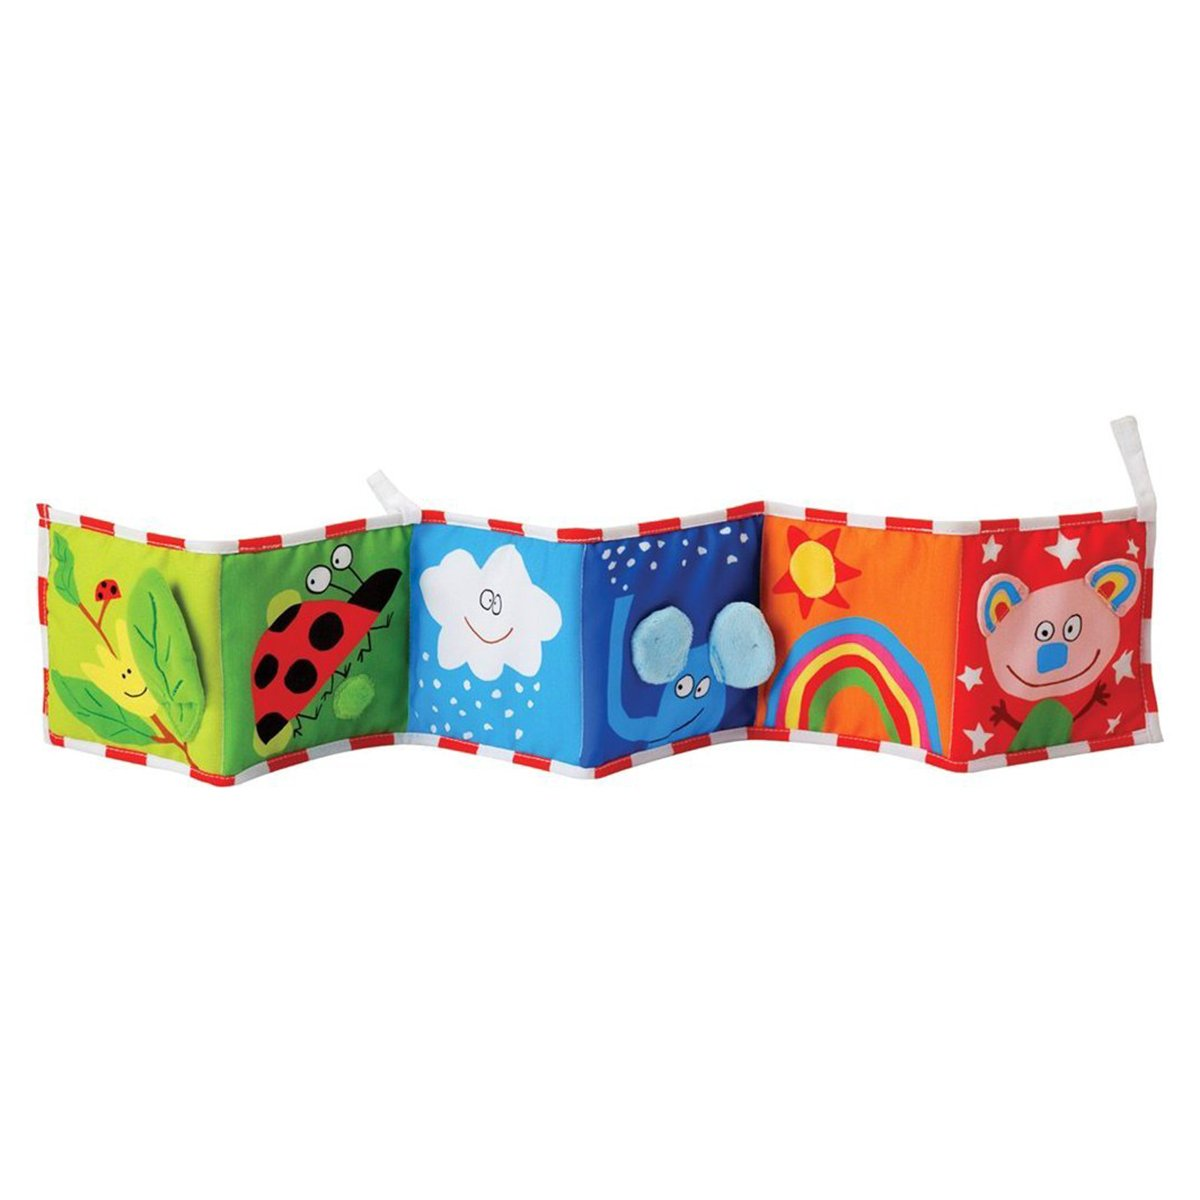 YeahiBaby Clip-on Pram Book for Baby Stroller Pram Carriage and Crib Entertainment and Development (Ladybug Pattern) by YeahiBaby (Image #3)